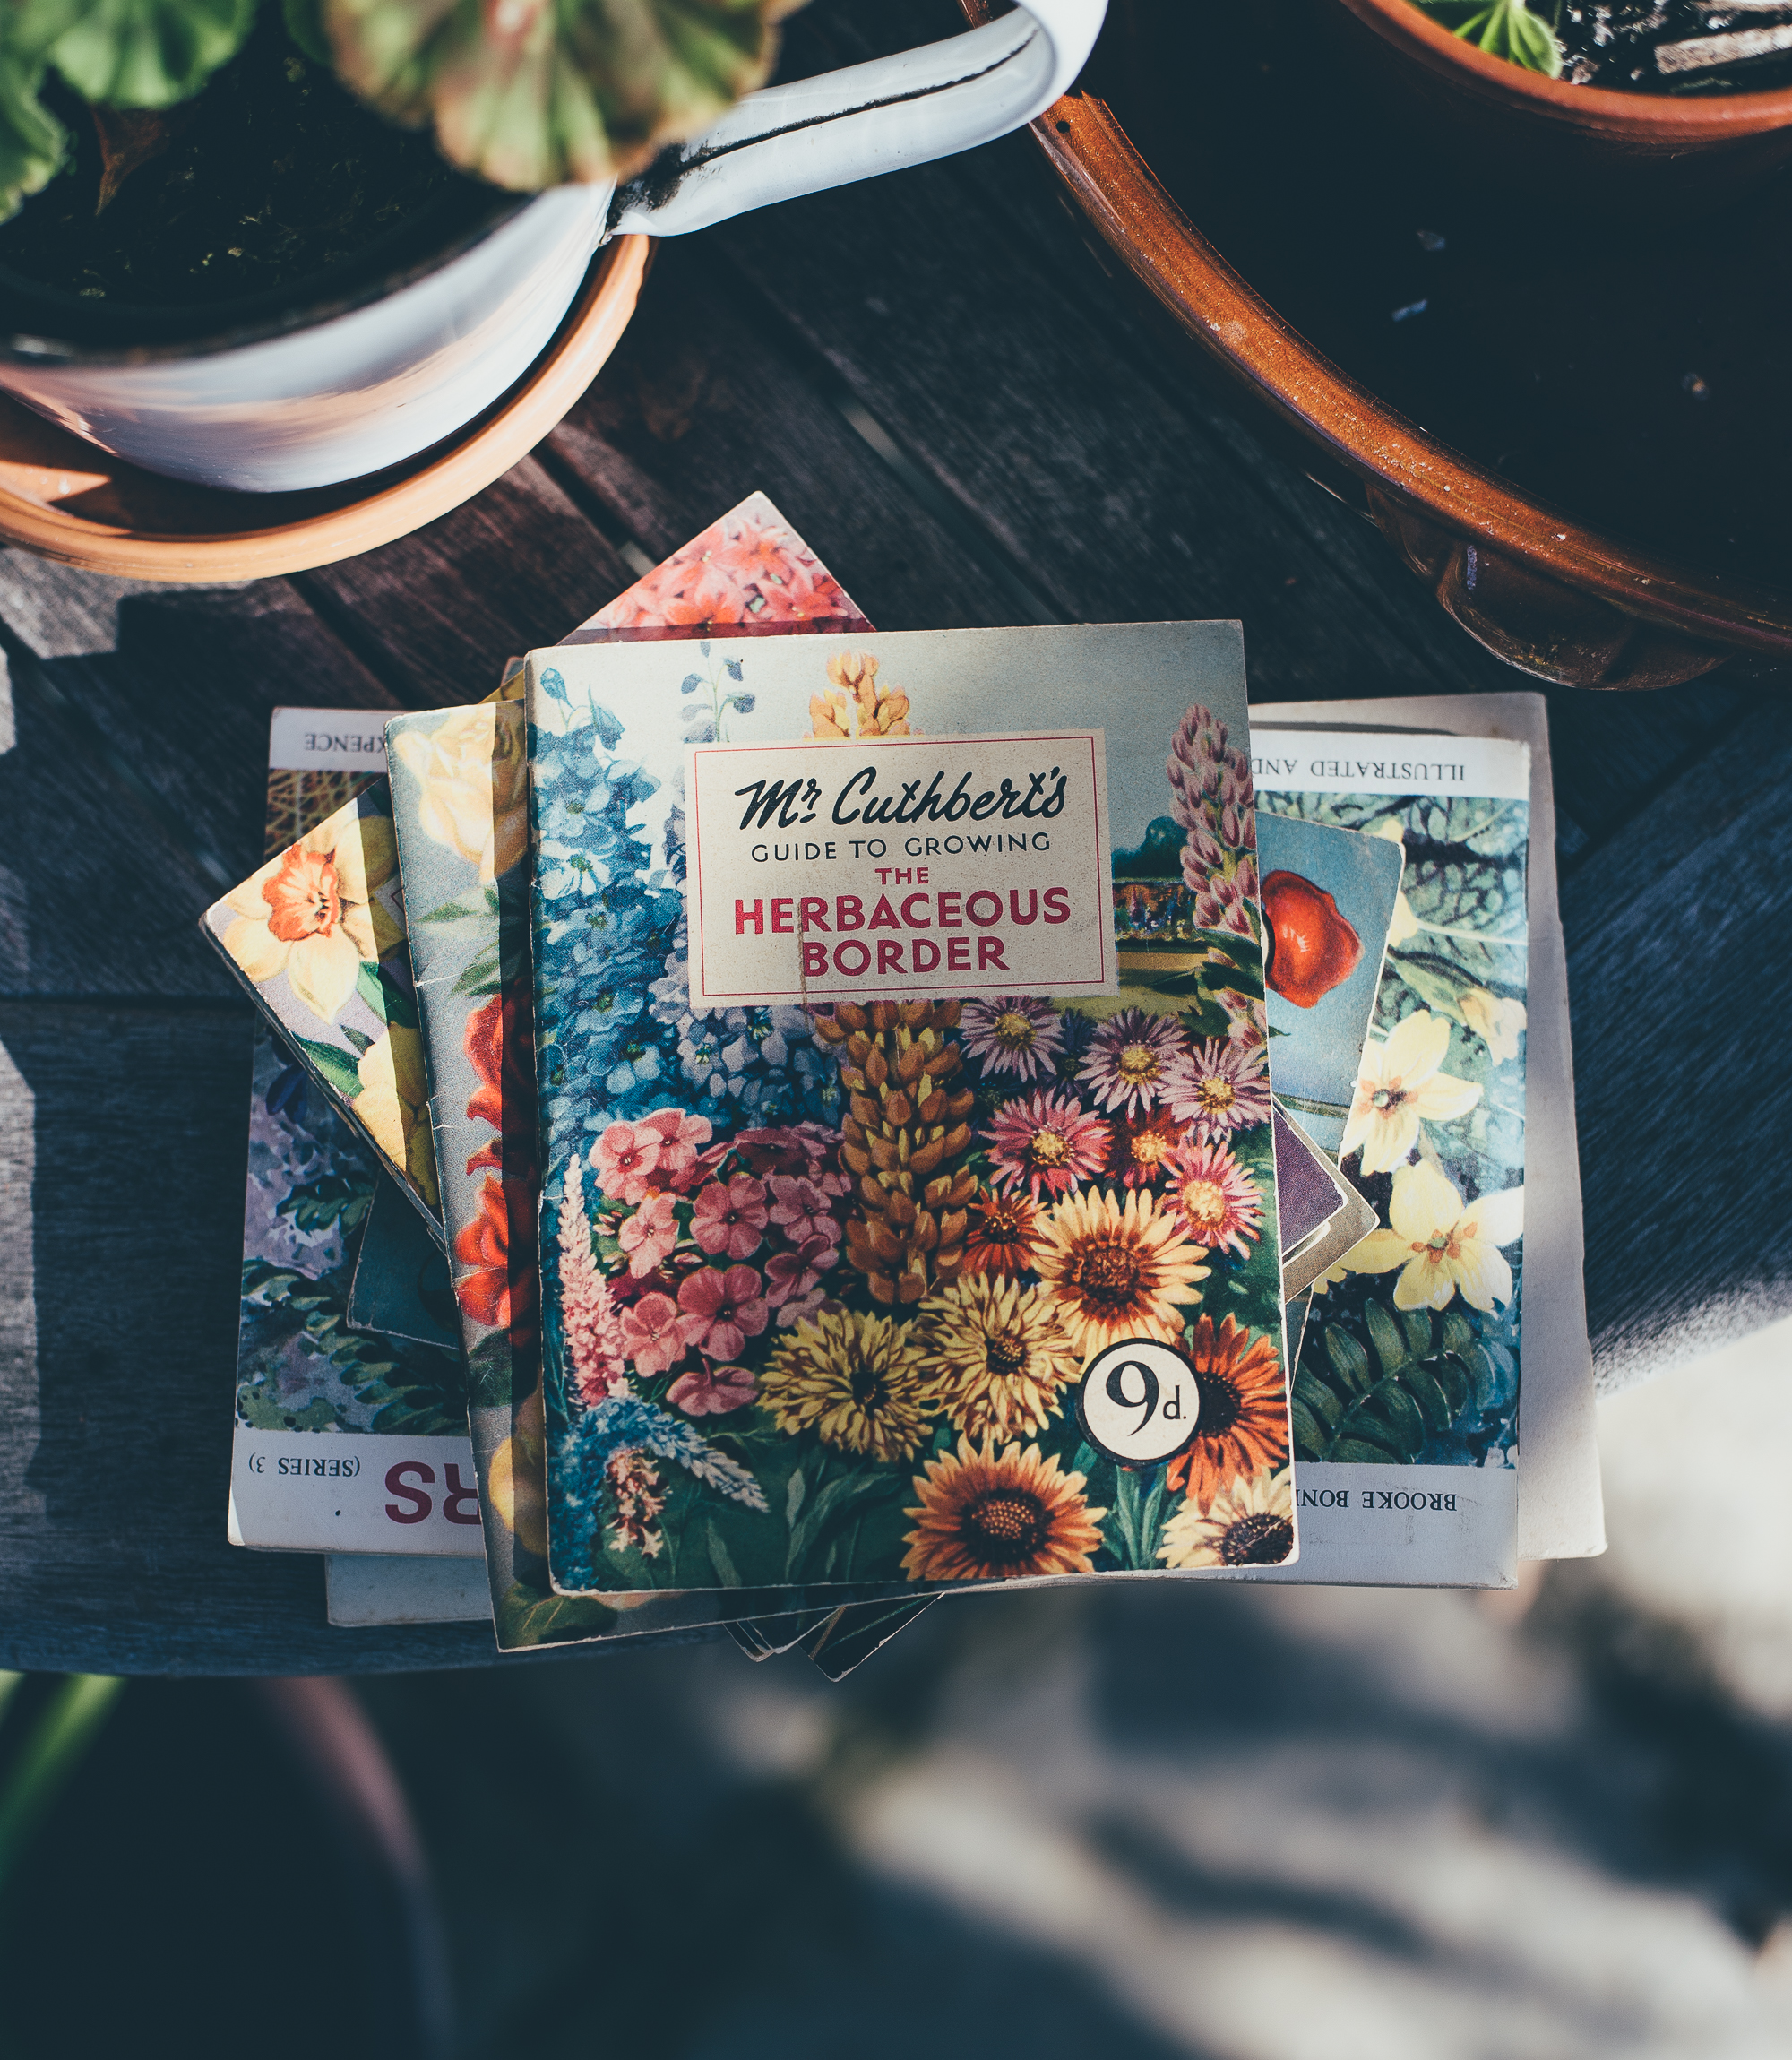 Vintage Garden Style - Mr Cutherbert's Guide to Growing